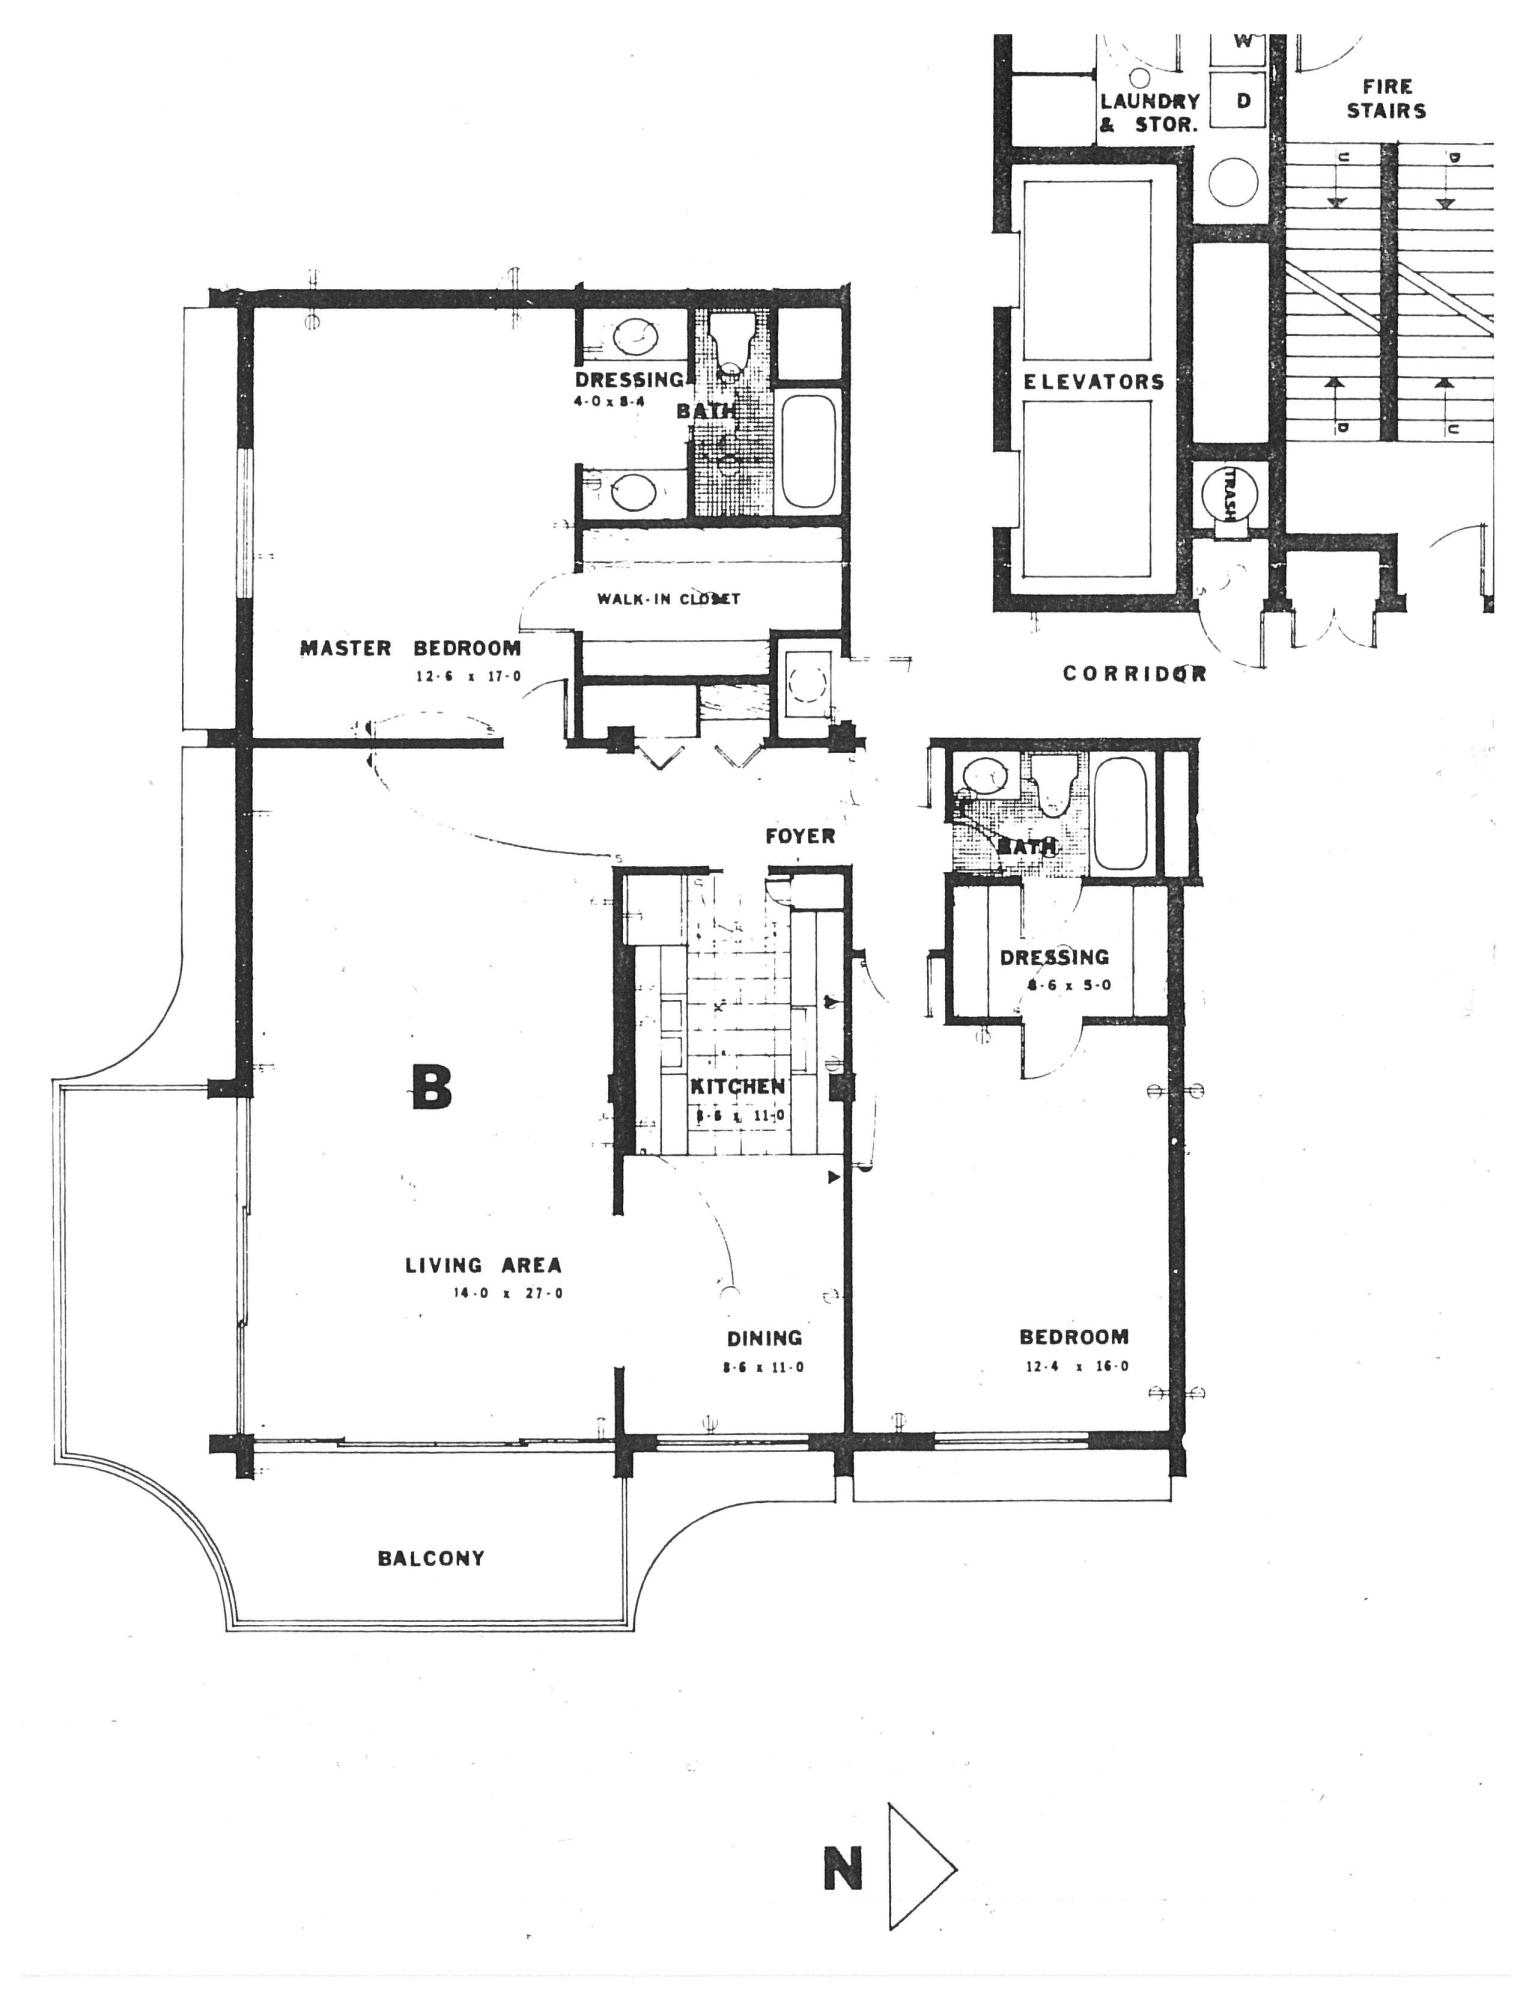 DUNES TOWERS HOMES